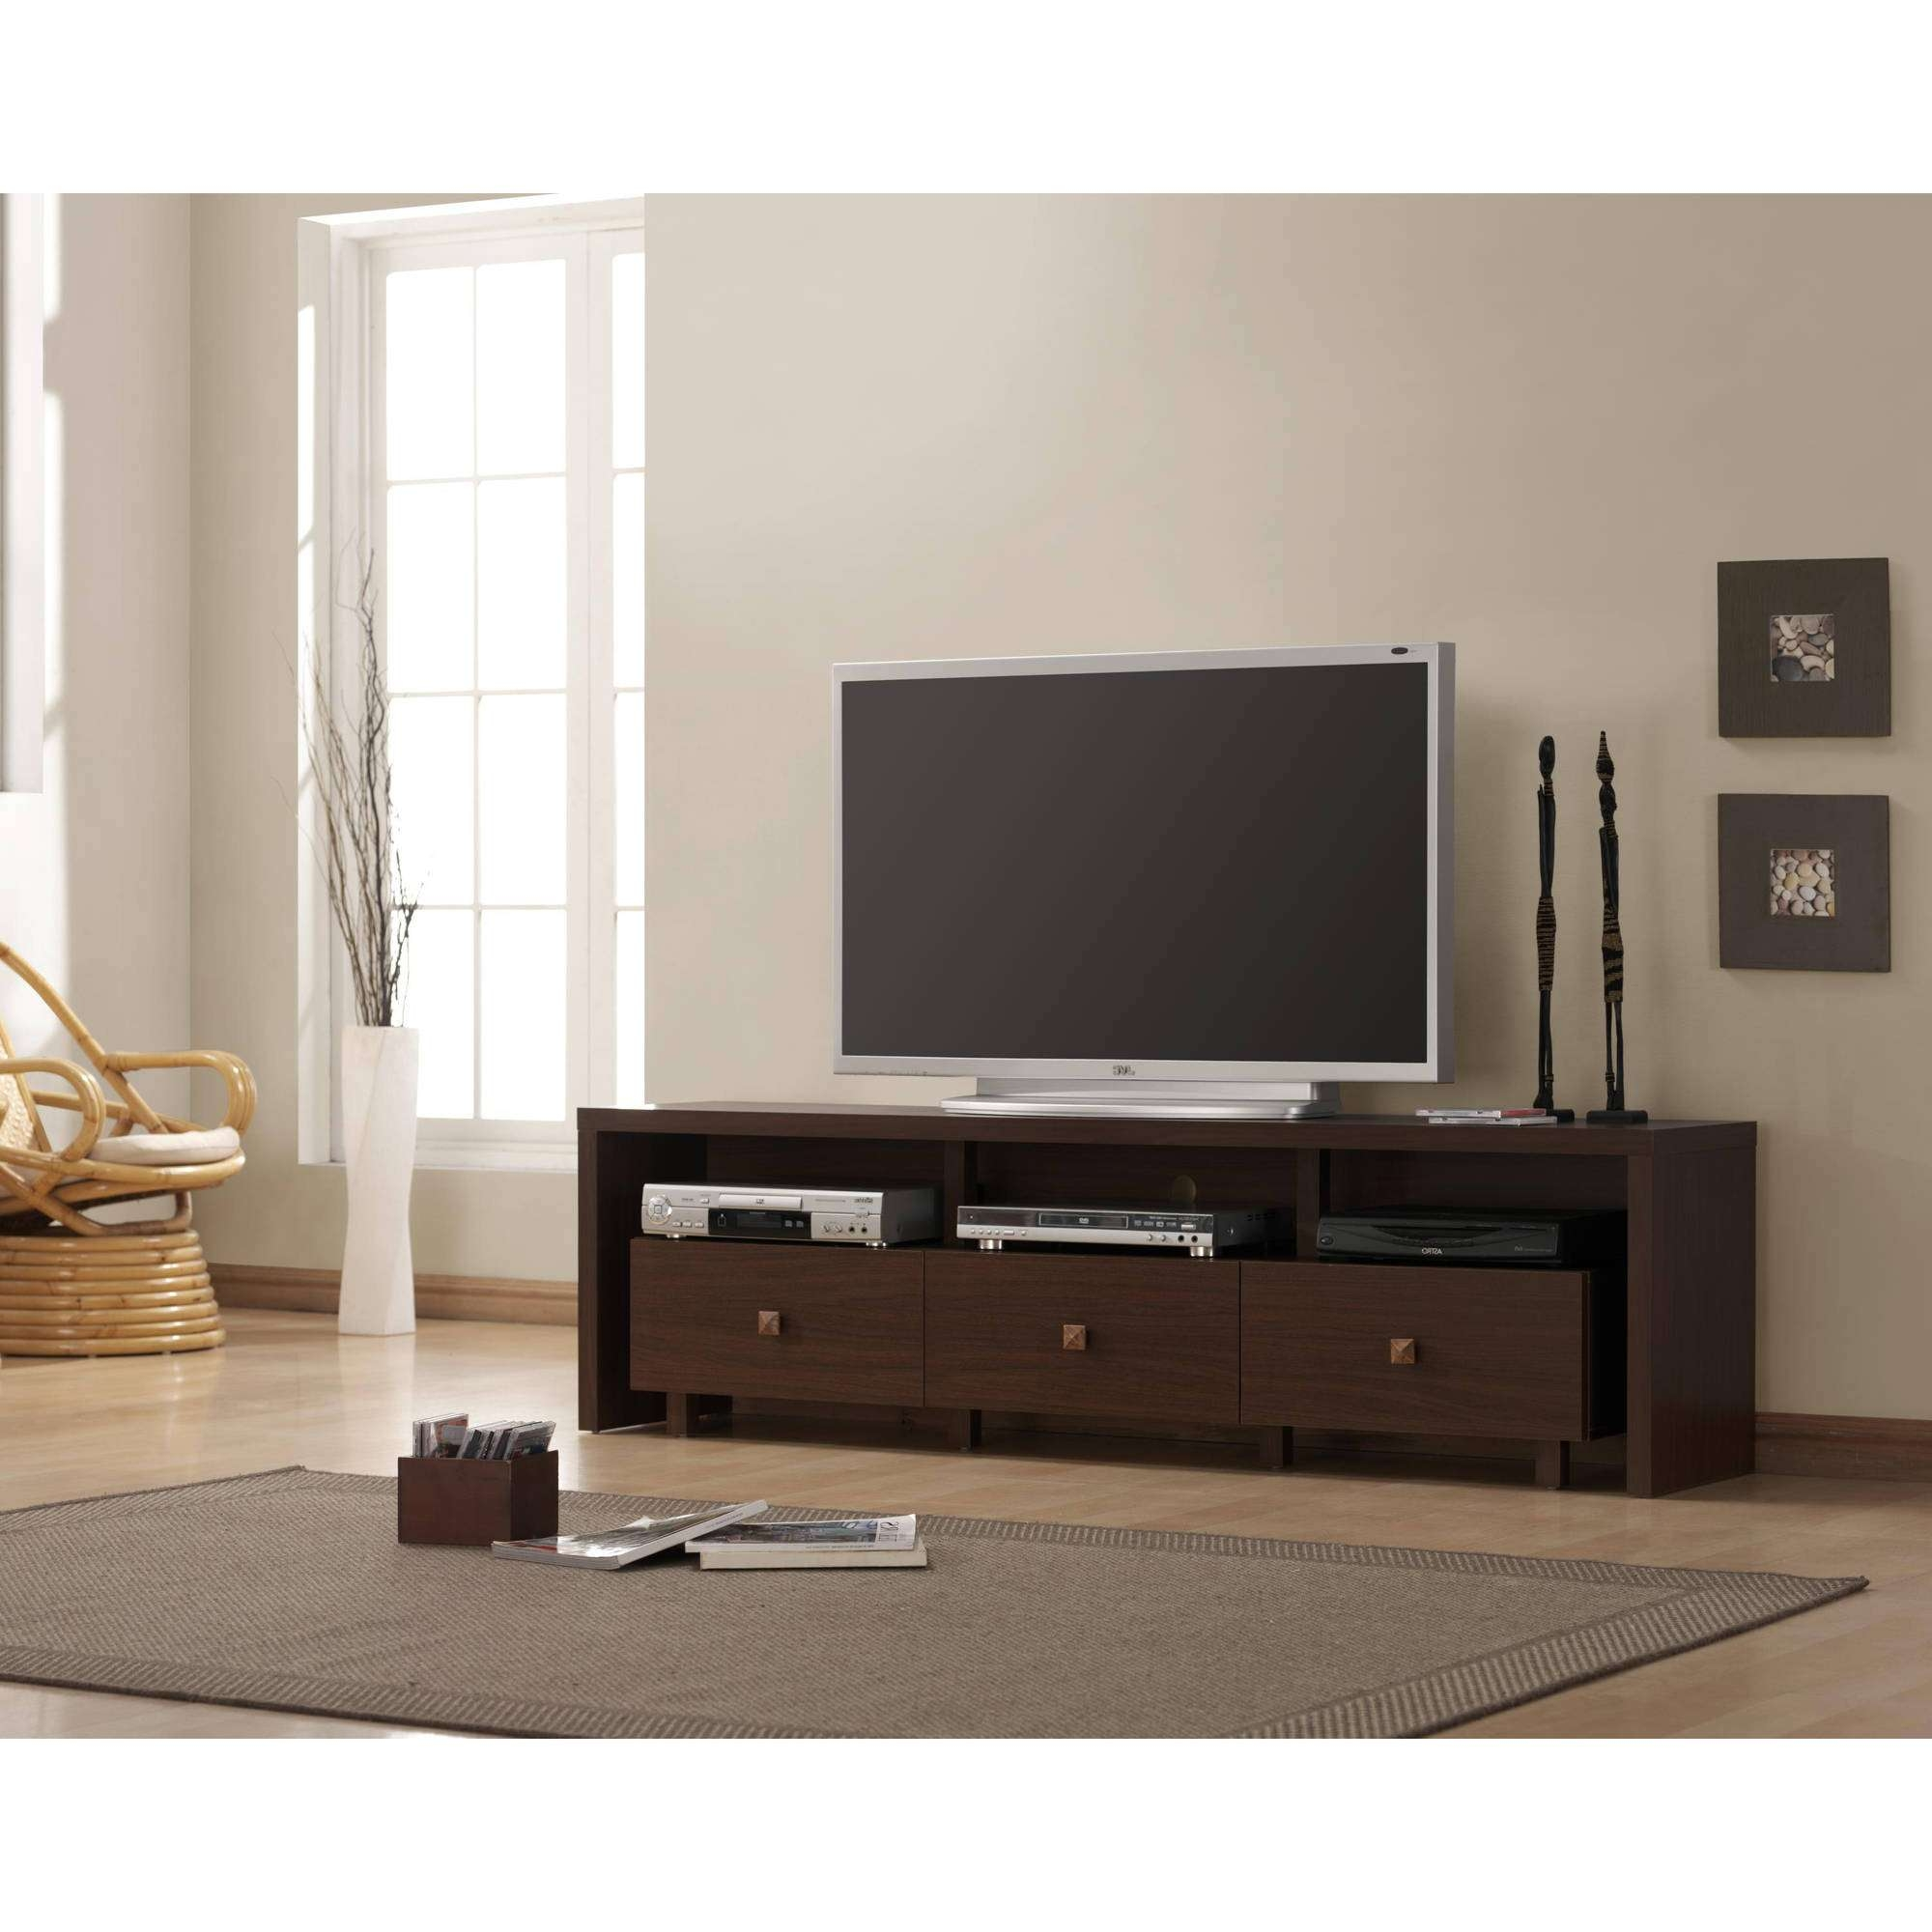 Furniture : Ludicrous Fireplace Tv Stand Modern Contemporary Tv Within Cream Tv Cabinets (View 15 of 20)